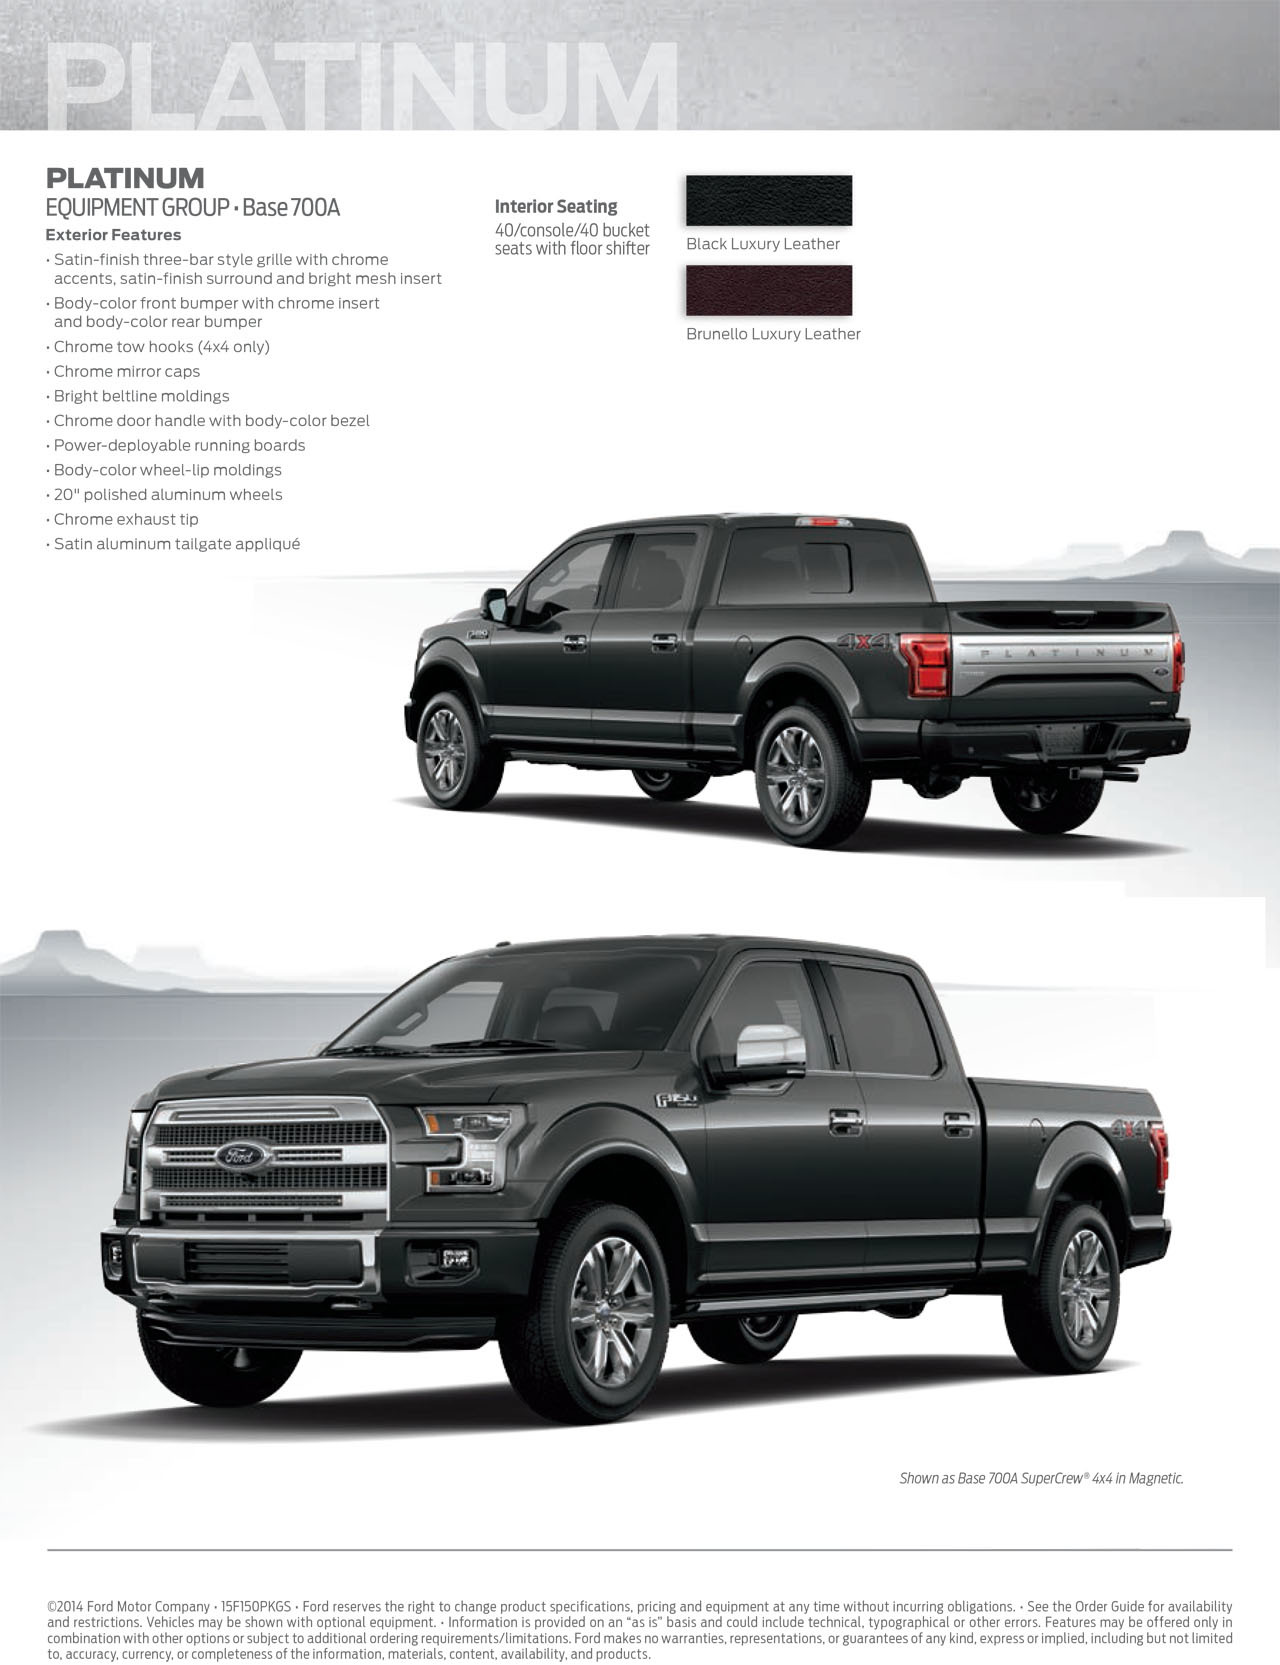 2015 F150 Brochure : brochure, Sport, Appearance, Package